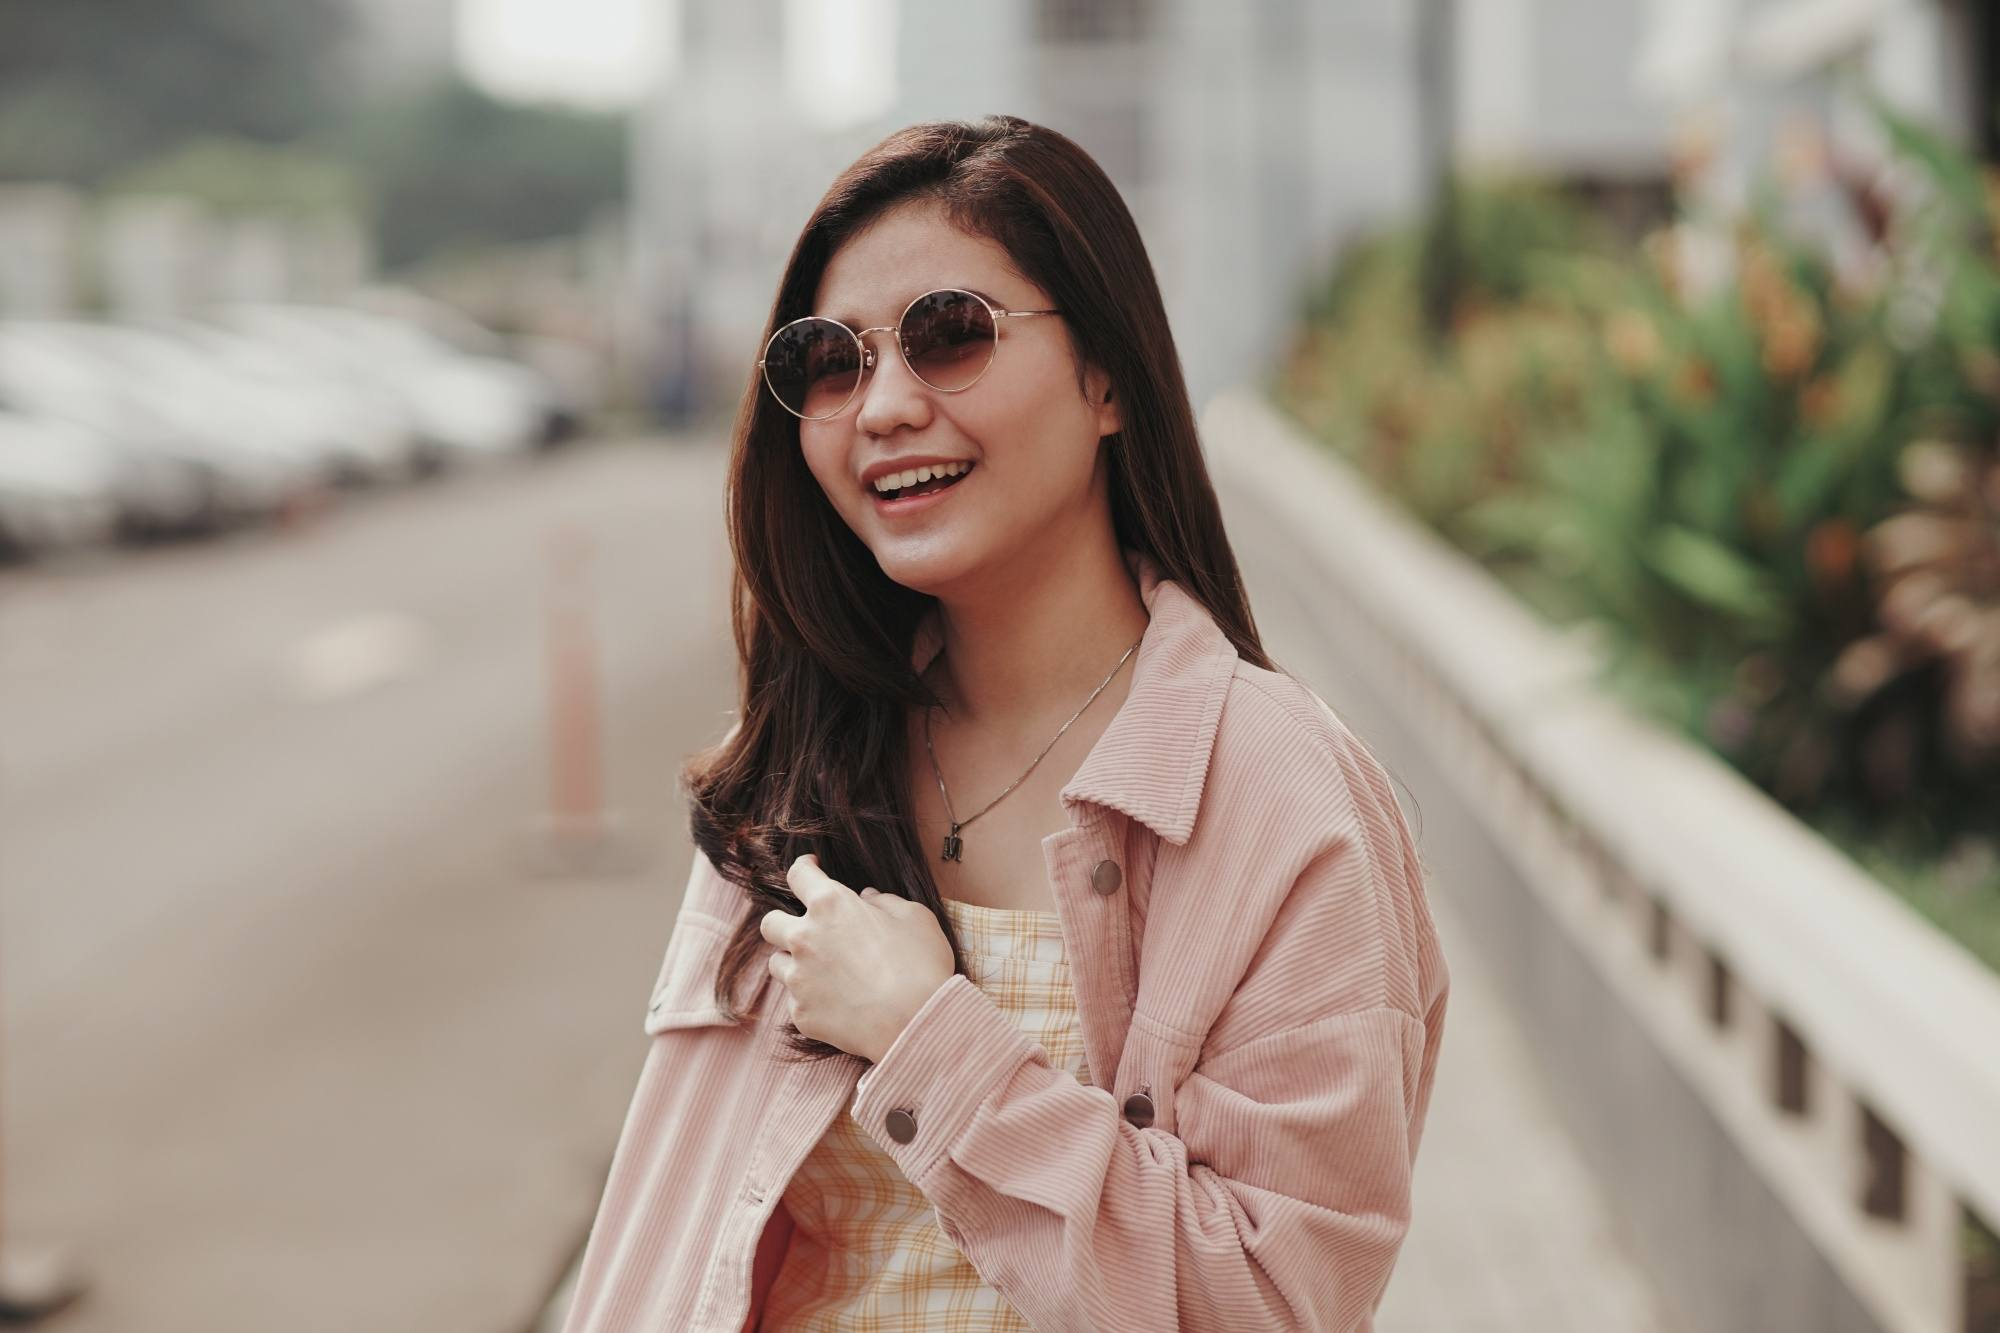 Hair Facts: Asian woman with long dark hair wearing shades smiling outdoors